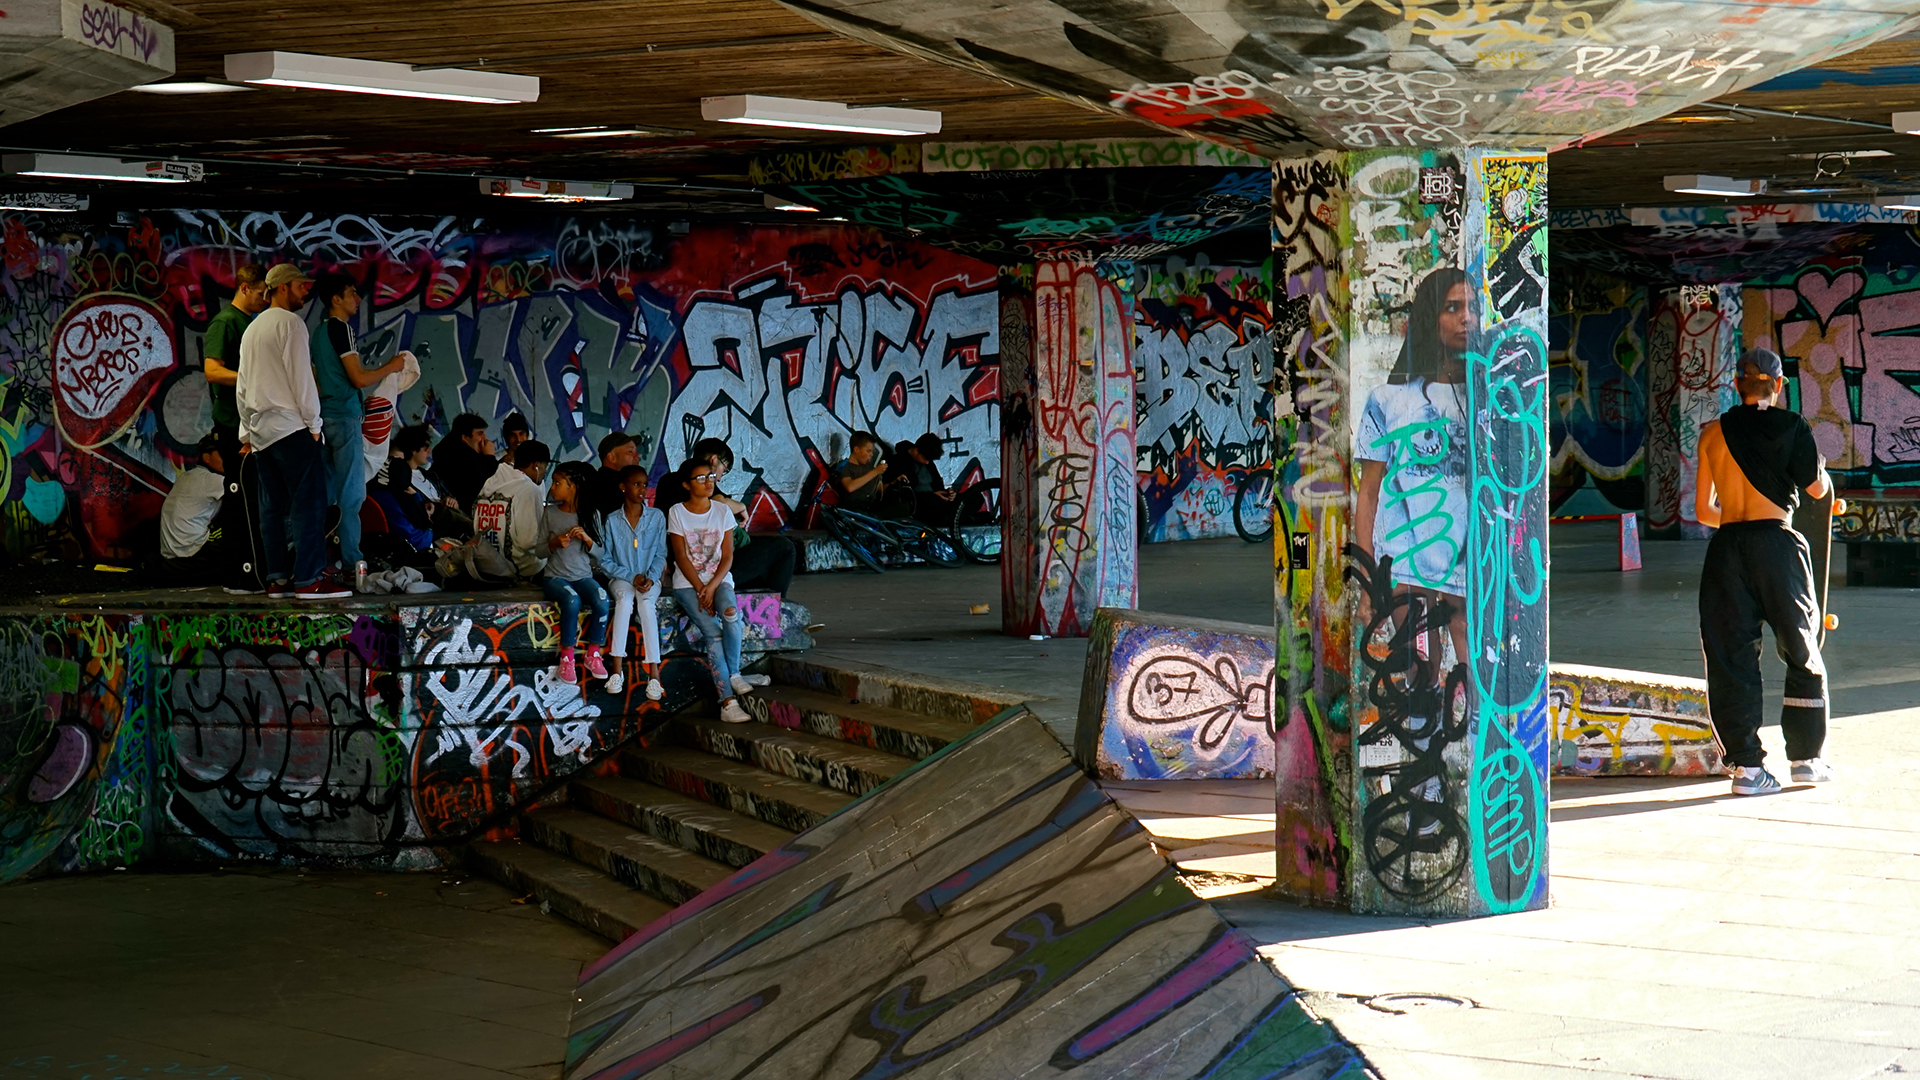 After its existence was threatened by a redevelopment project in 2014, 27,286 signatures were collected in support of the London Southbank skate park. Thanks to its activist advocates, the infamous skating-hotspot and place of vibrant cultural exchange wa